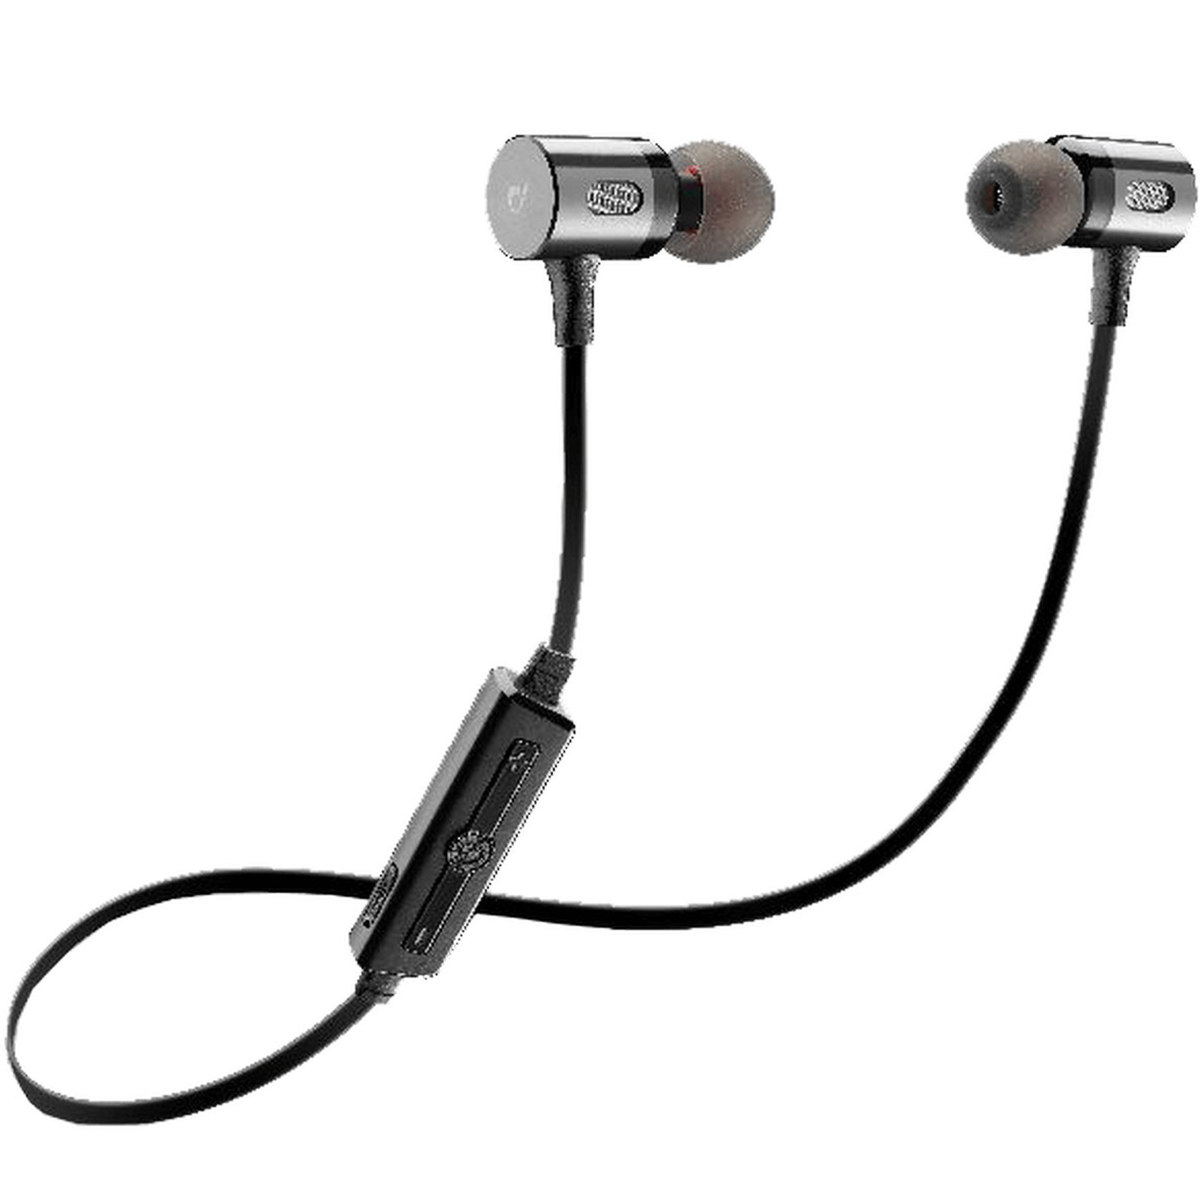 Cellular Line Bluetooth Stereo Headset Btmosquito Black Buy Online In Kuwait Cellular Line Products In Kuwait See Prices Reviews And Free Delivery Over Kd 20 000 Desertcart